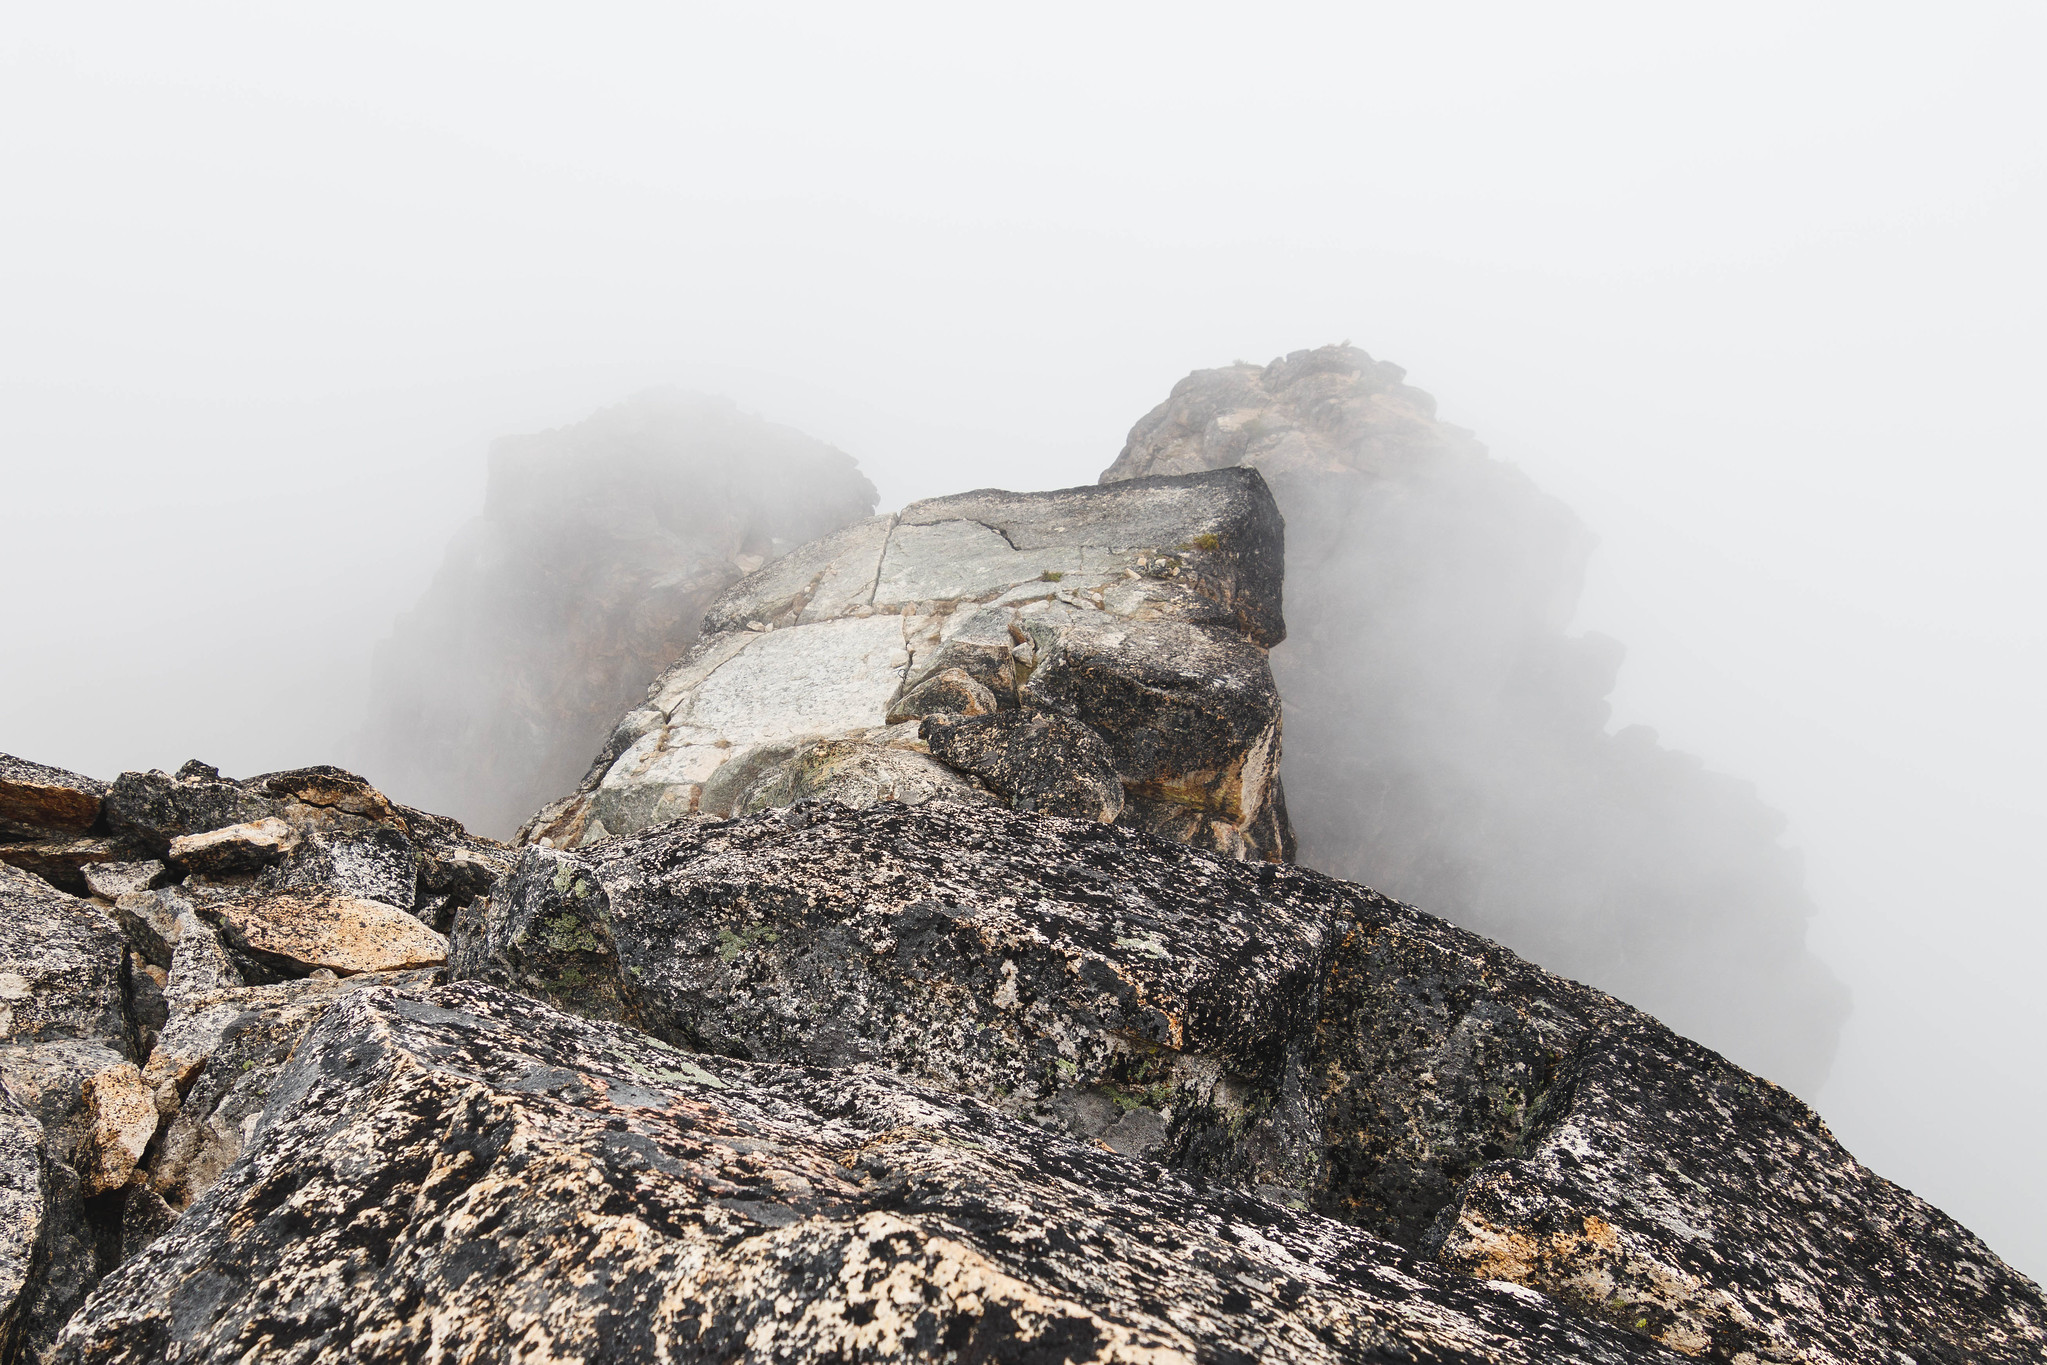 No views on the summit